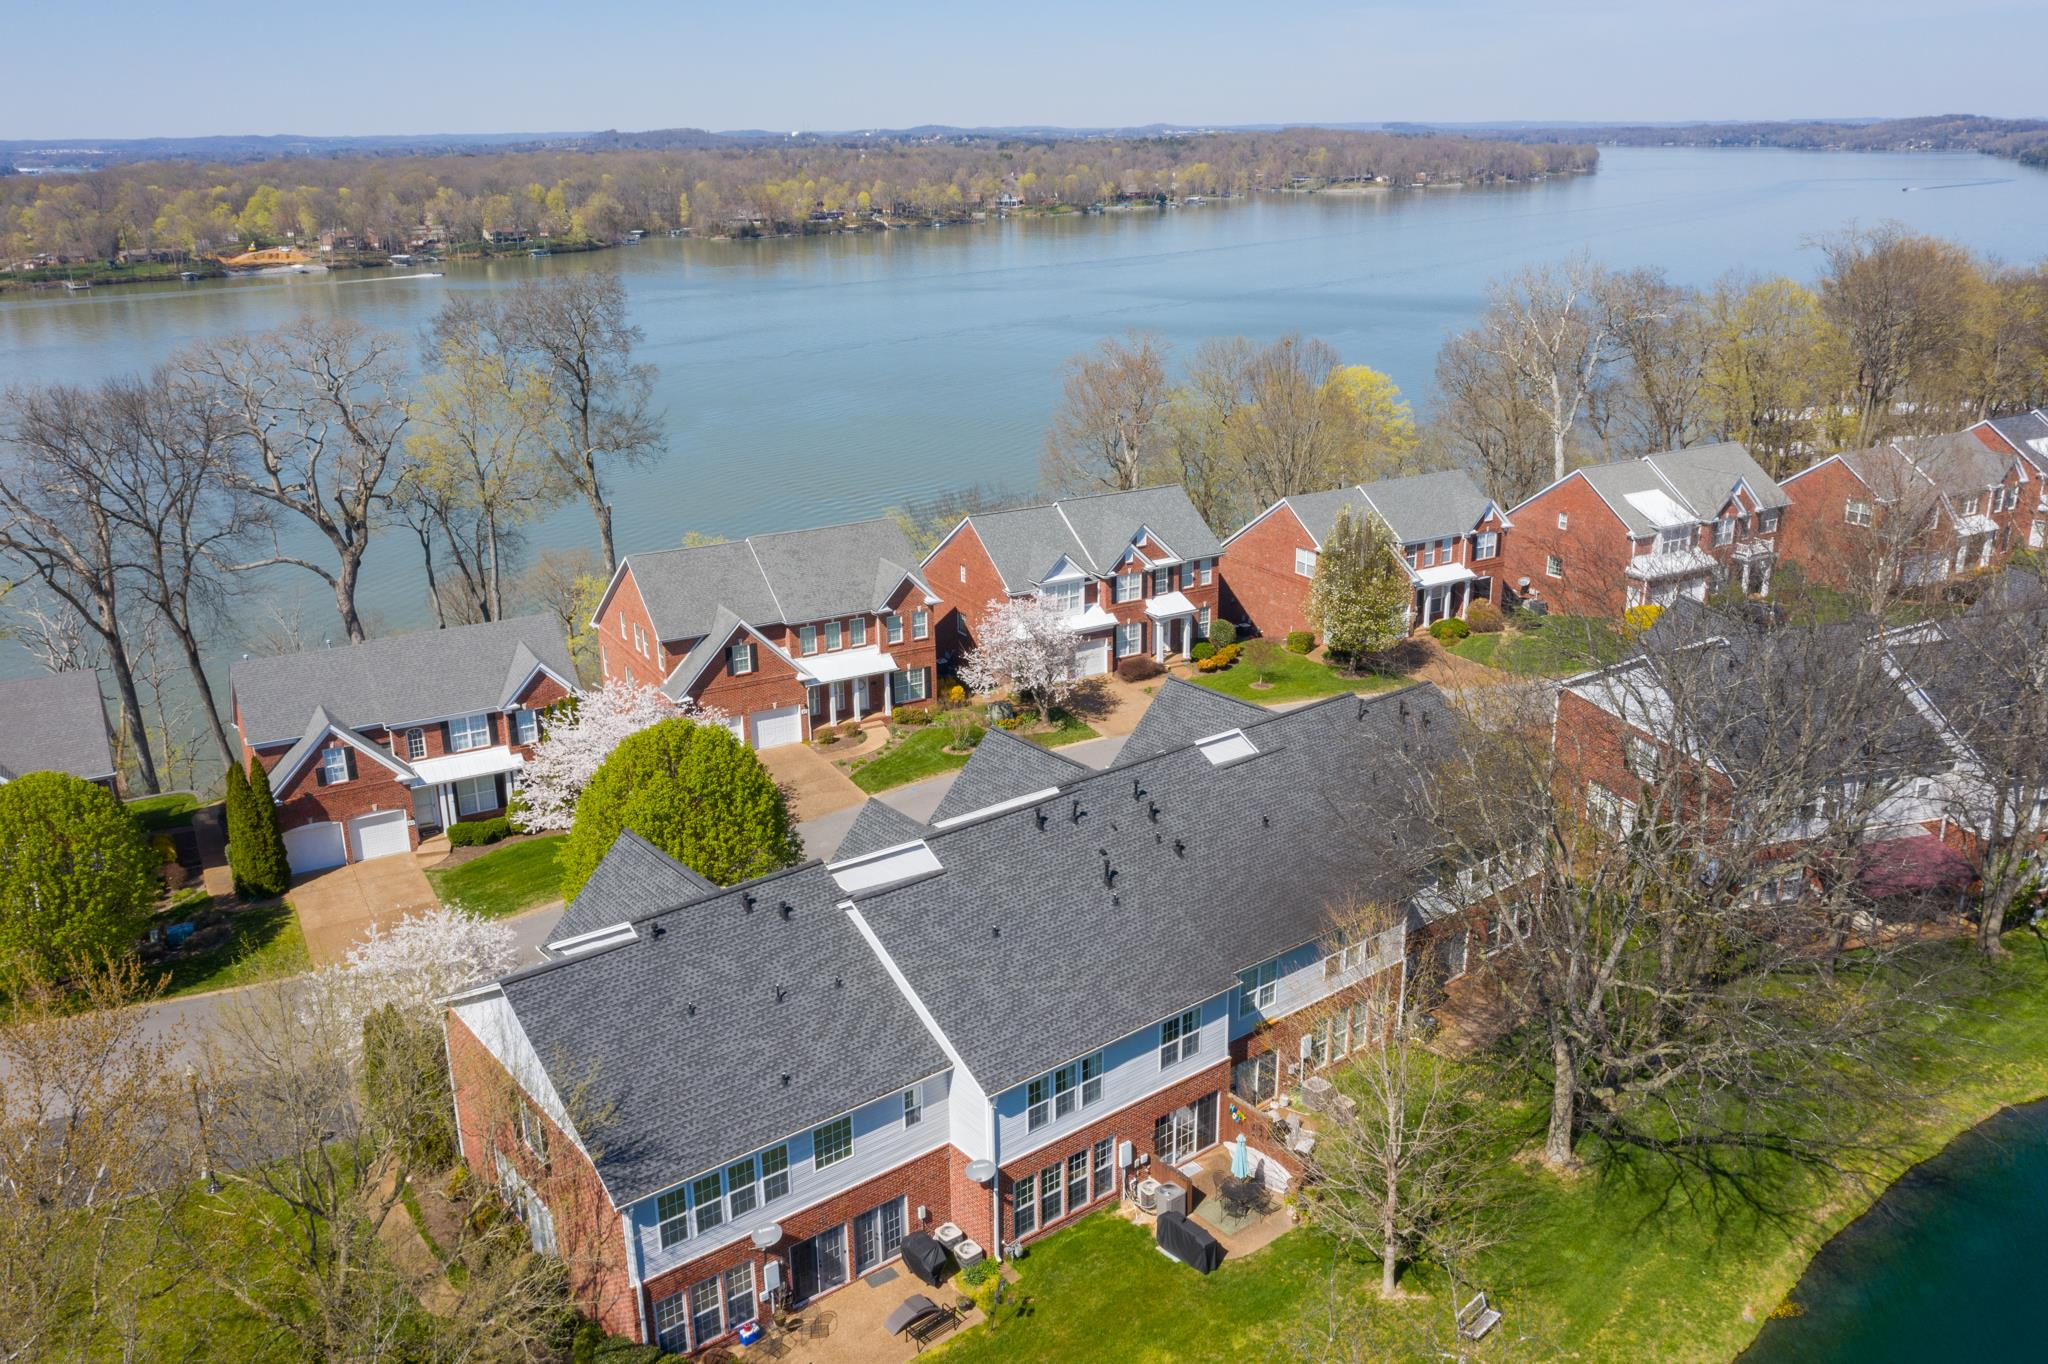 231 Green Harbor Rd Unit 42, Old Hickory, TN 37138 - Old Hickory, TN real estate listing